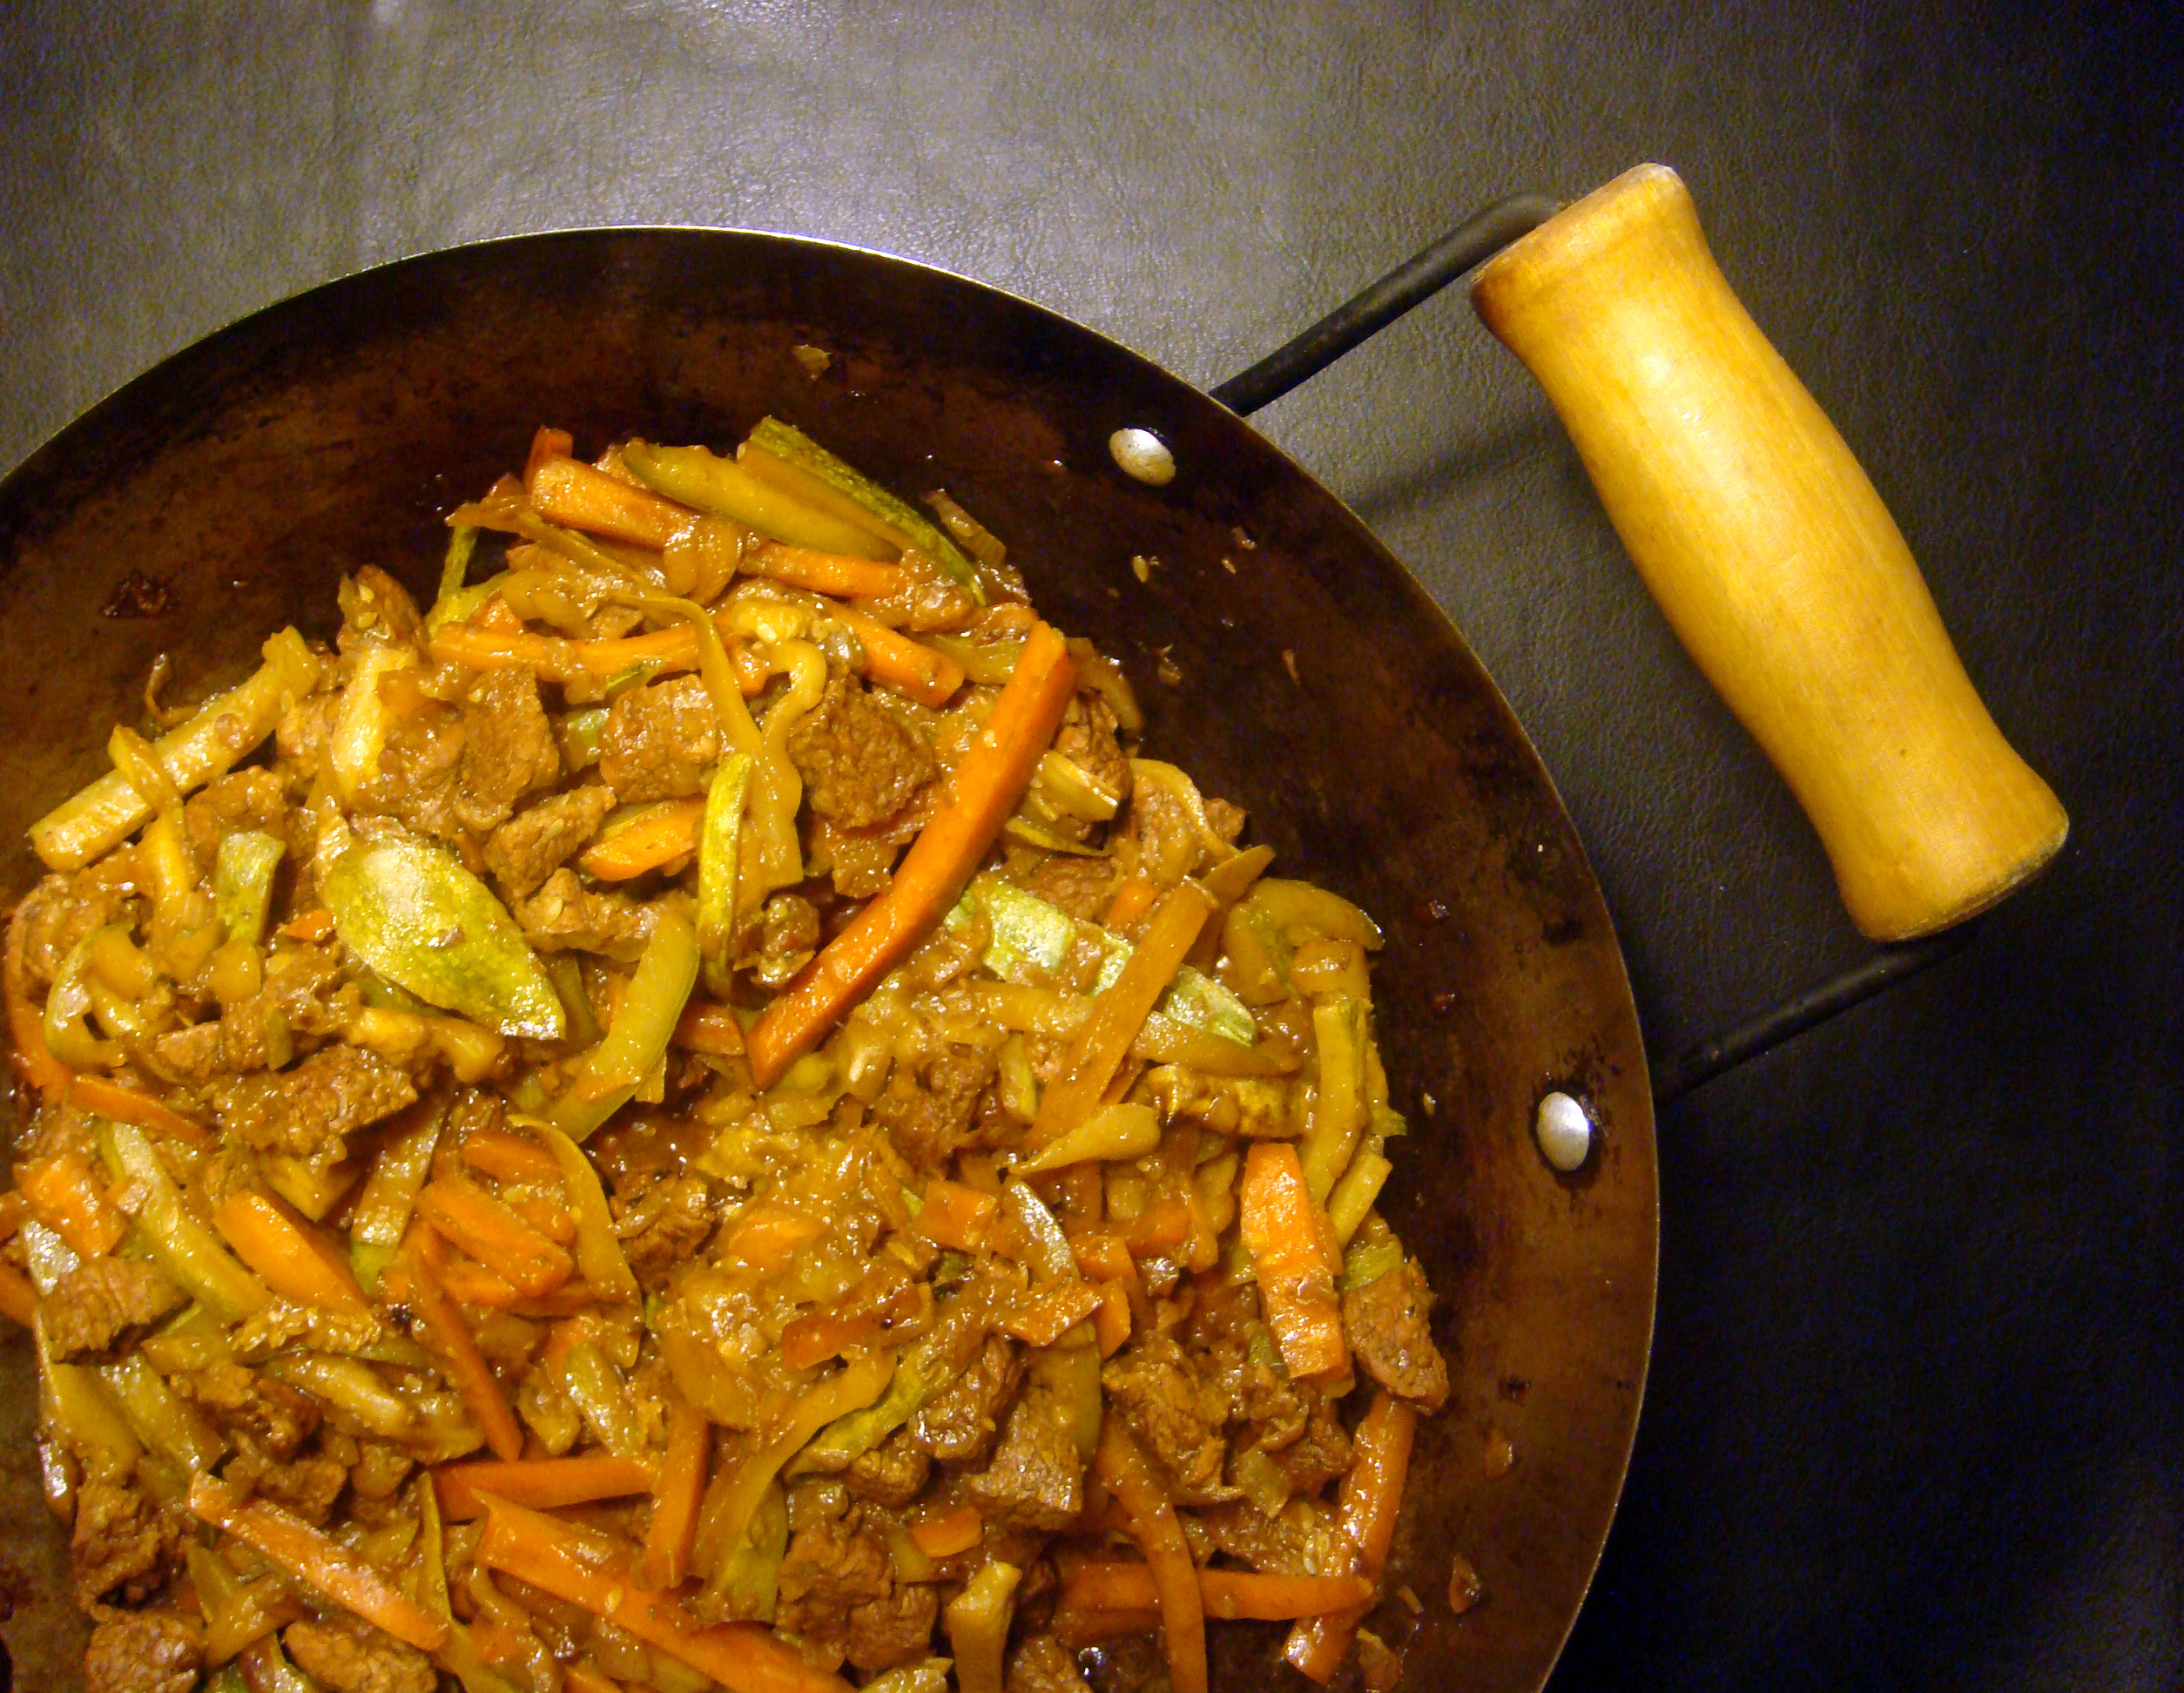 Stir-fried beef, carrots & zucchini